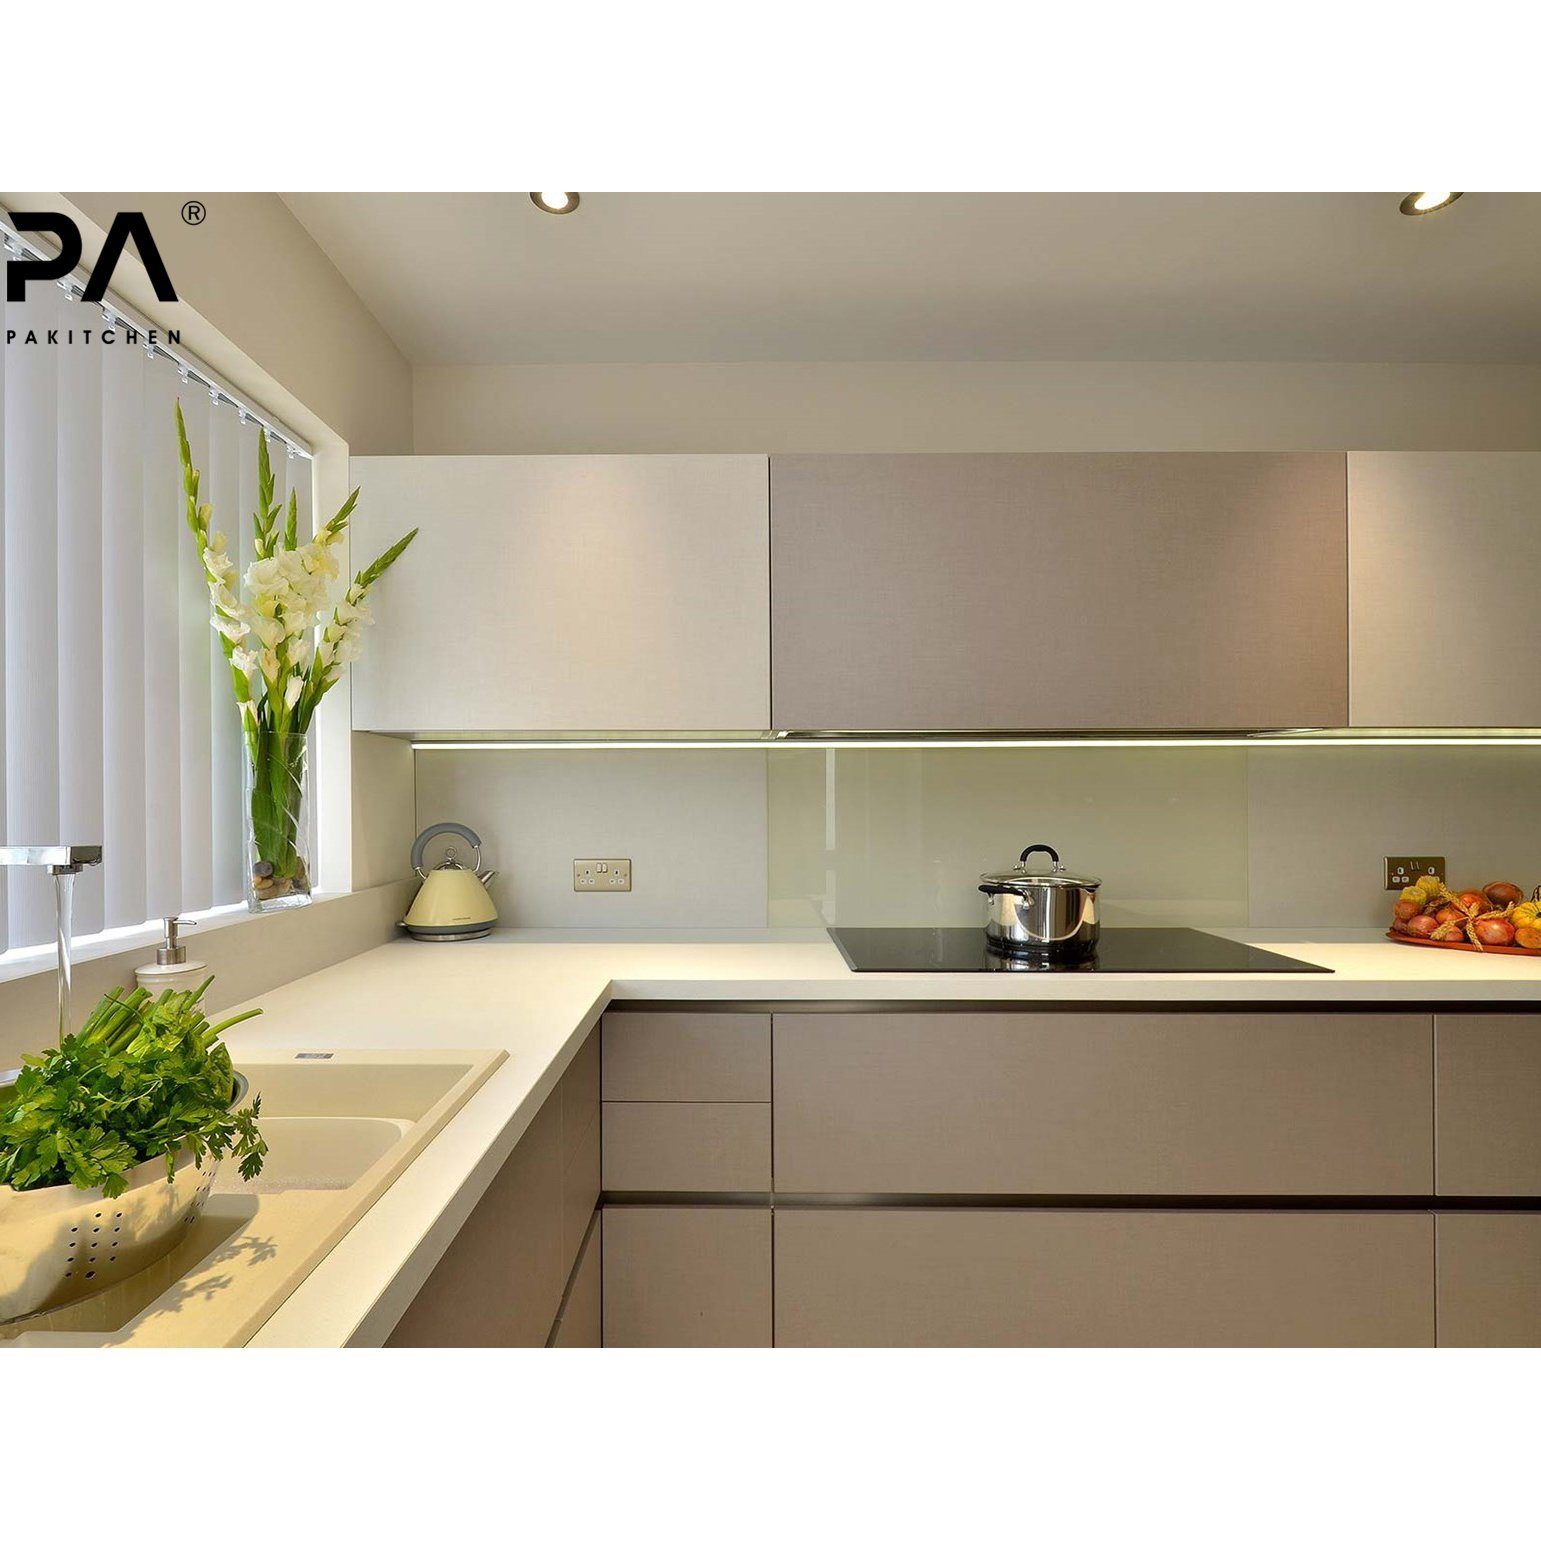 China Foshan Wholesale High End Knock Down Contemporary Plywood Termite Proof Lacquer Kitchen Cabinet Bespoke Kitchen Cabinetry Photos Pictures Made In China Com